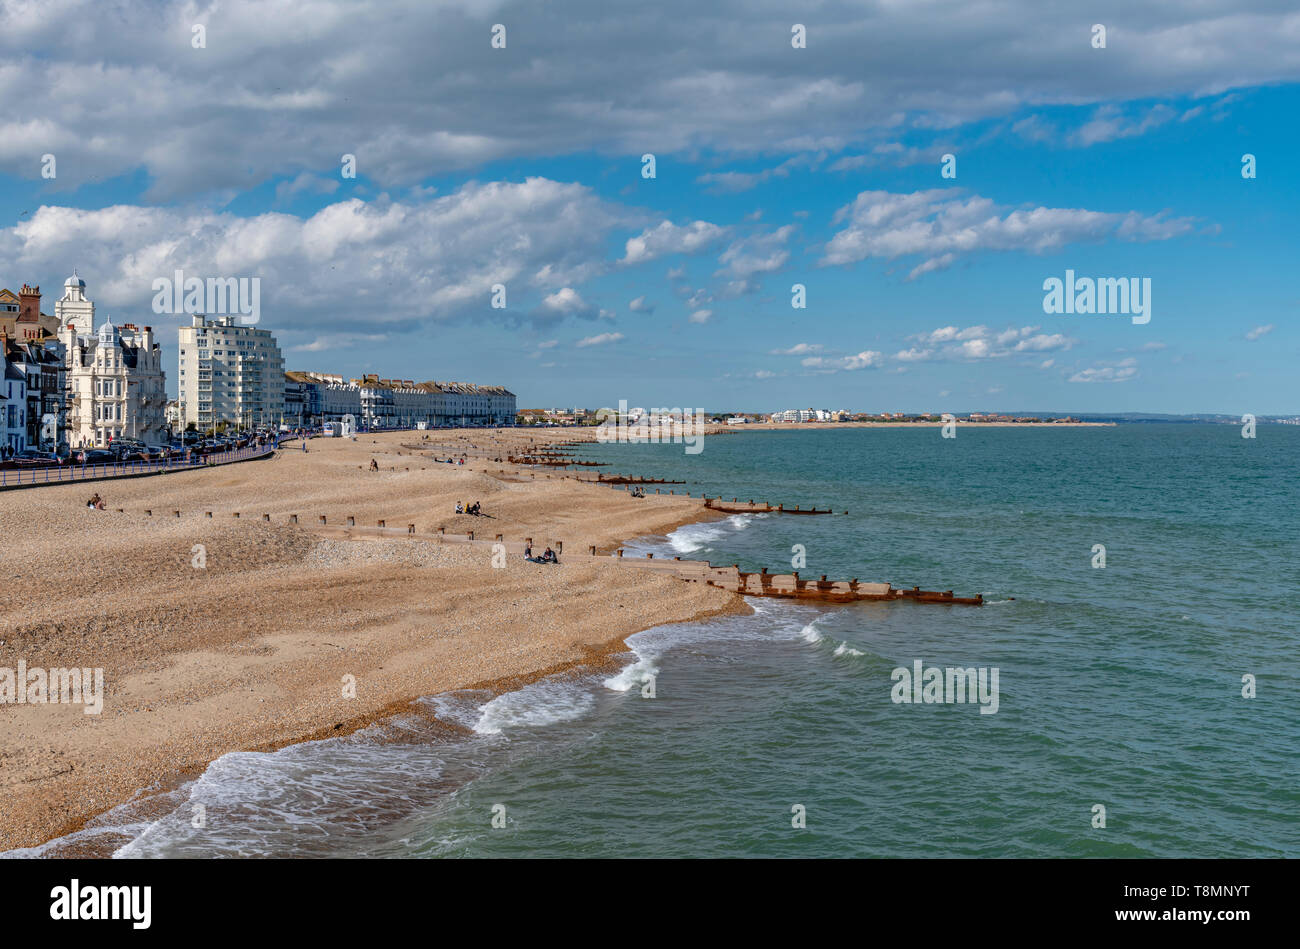 The sea front at Eastbourne showing the pebbled beach. Photo taken from Eastbourne Pier. Completed in 1872. Stock Photo